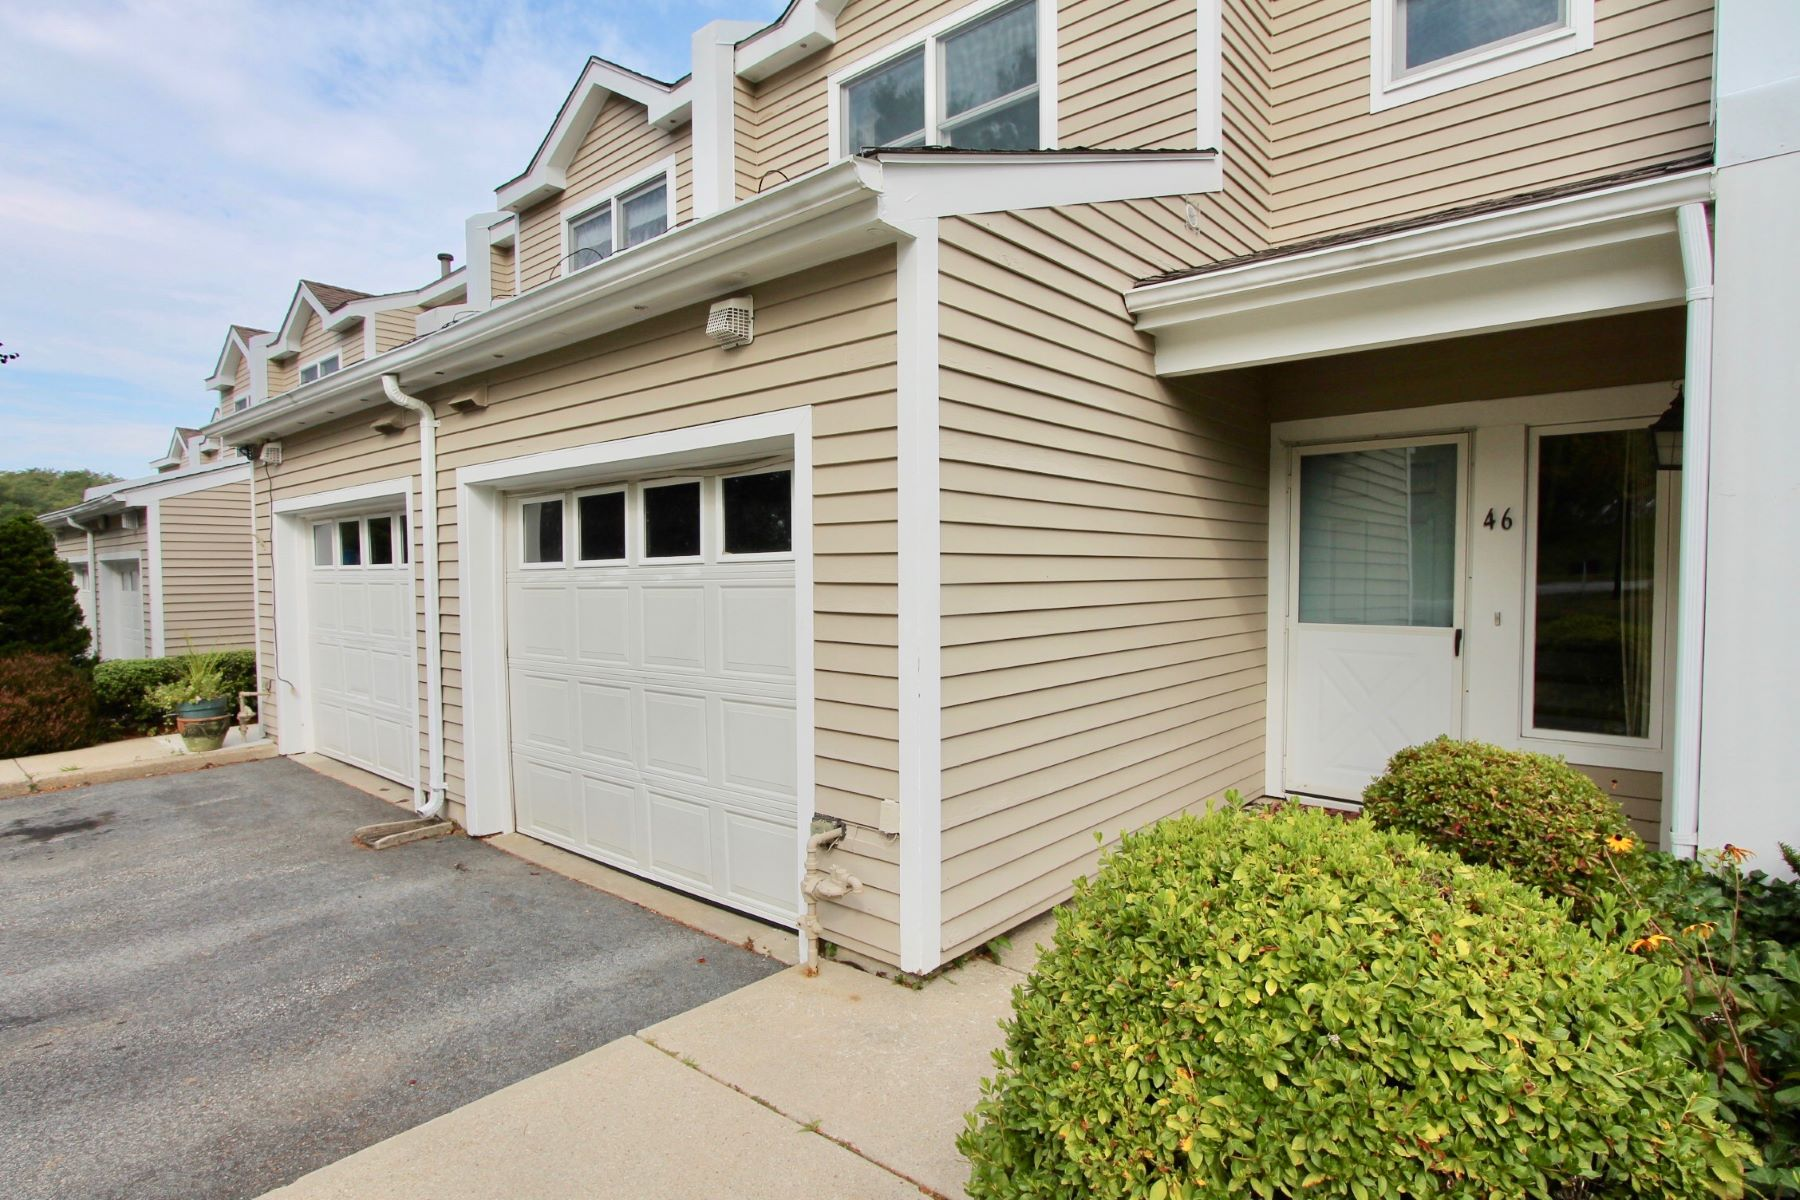 Additional photo for property listing at Bayview Townhouses 46 Lawton Brook Lane Portsmouth, Rhode Island 02871 United States